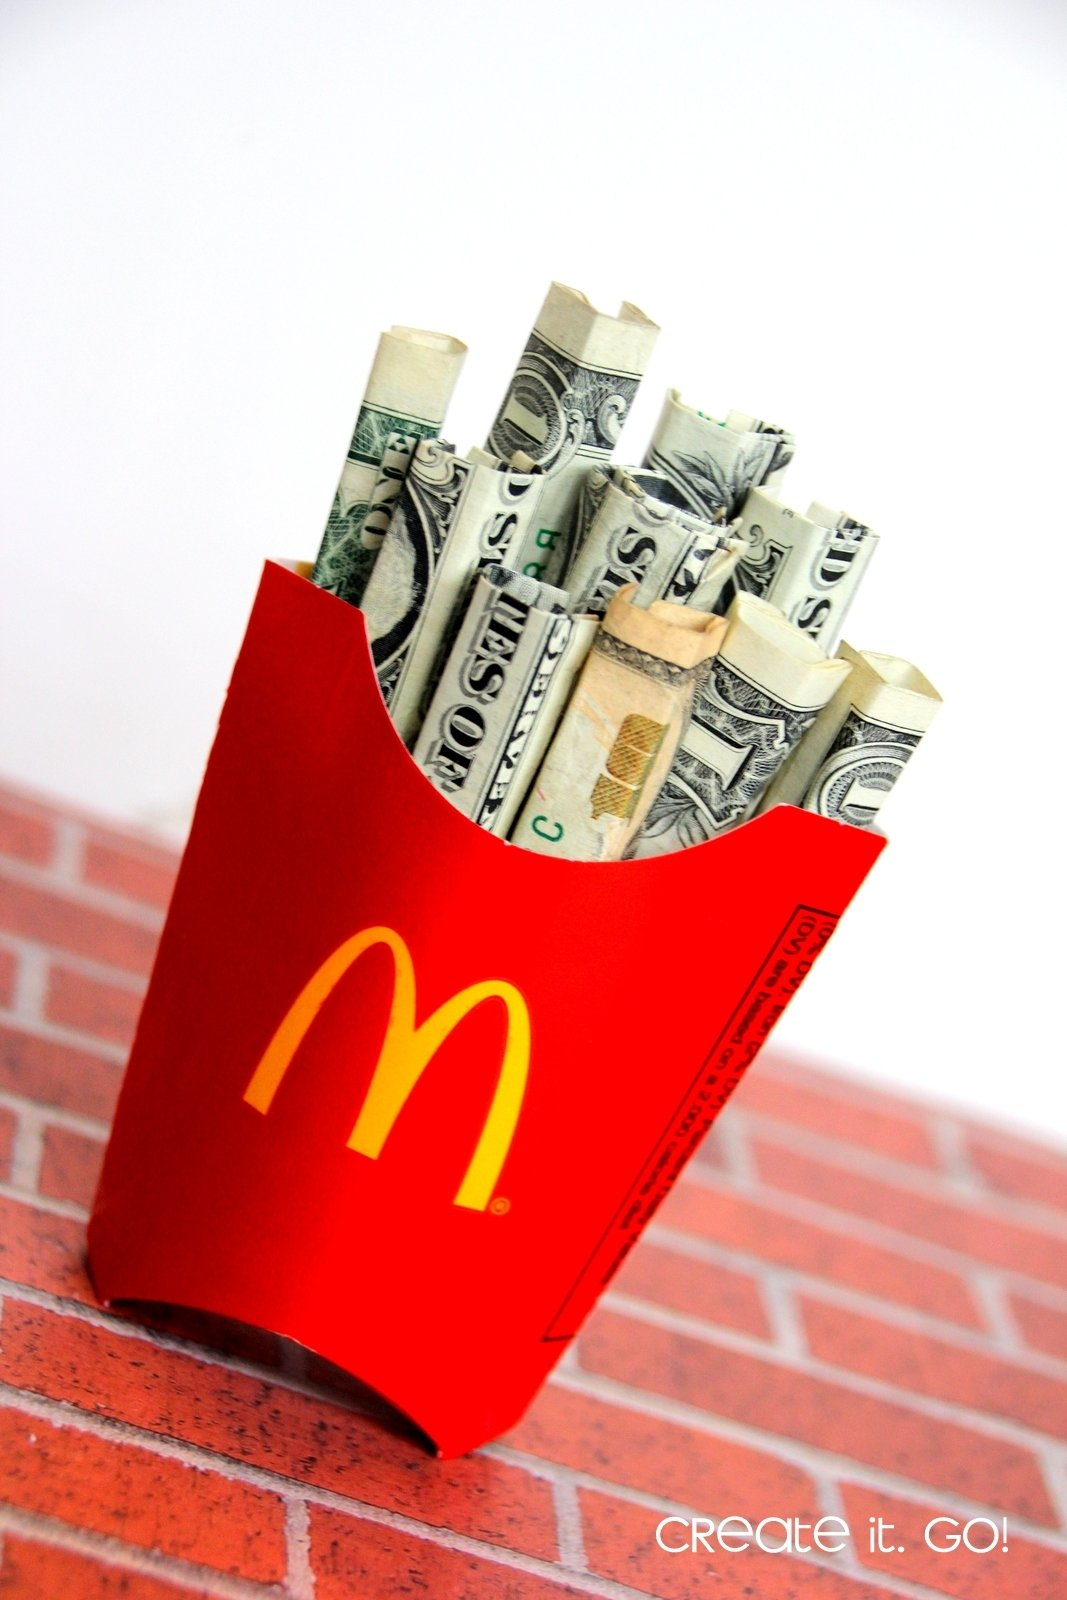 i love adding a thing of real fries in the bag too or a gift card